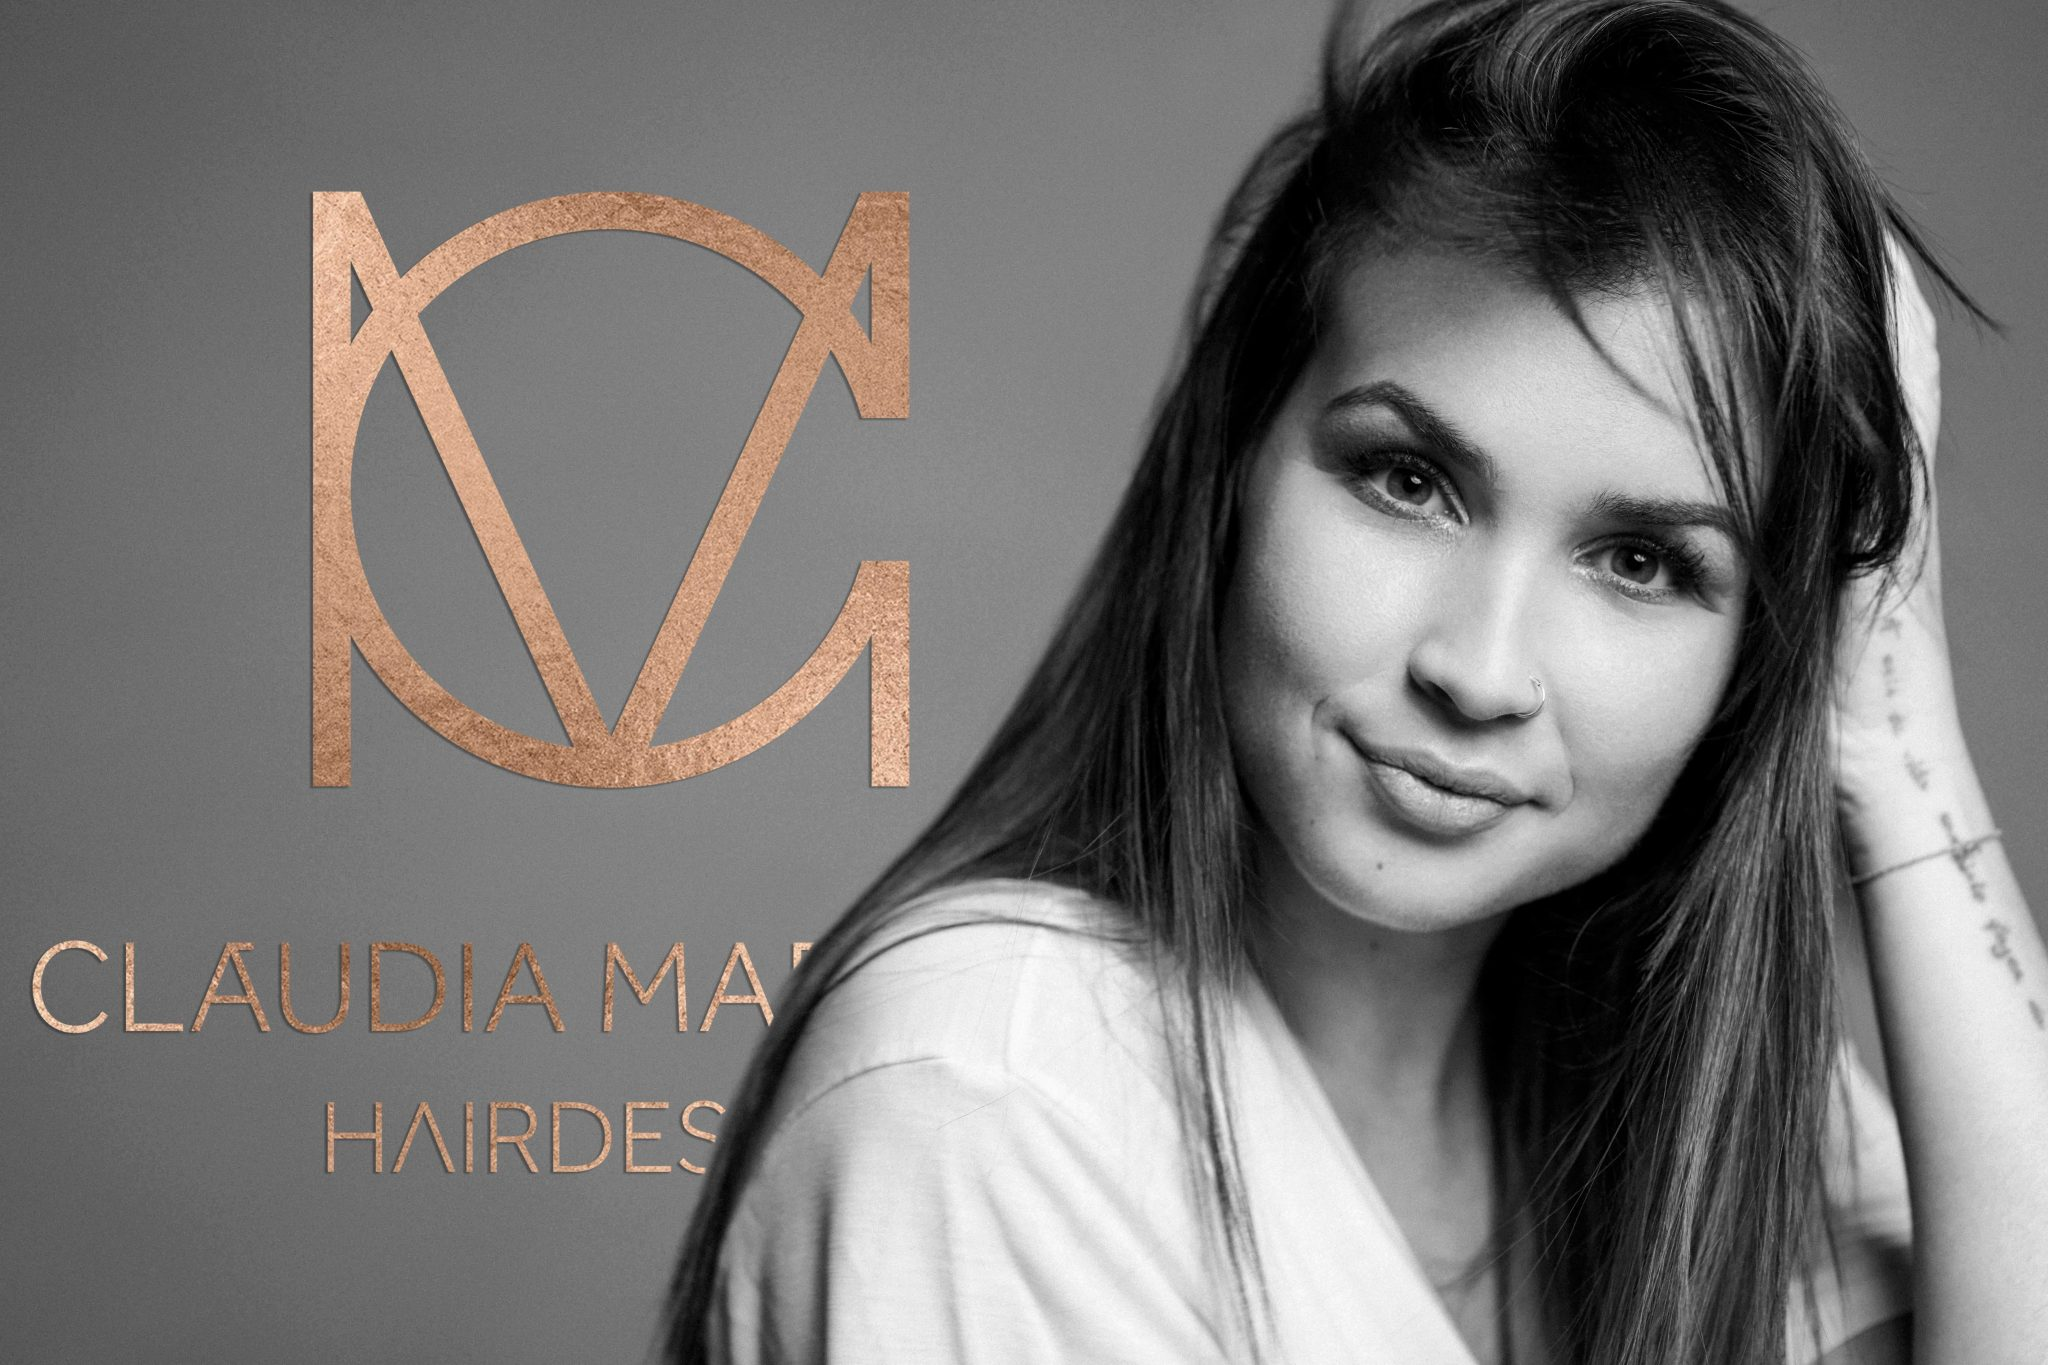 Claudia Marques HairDesign